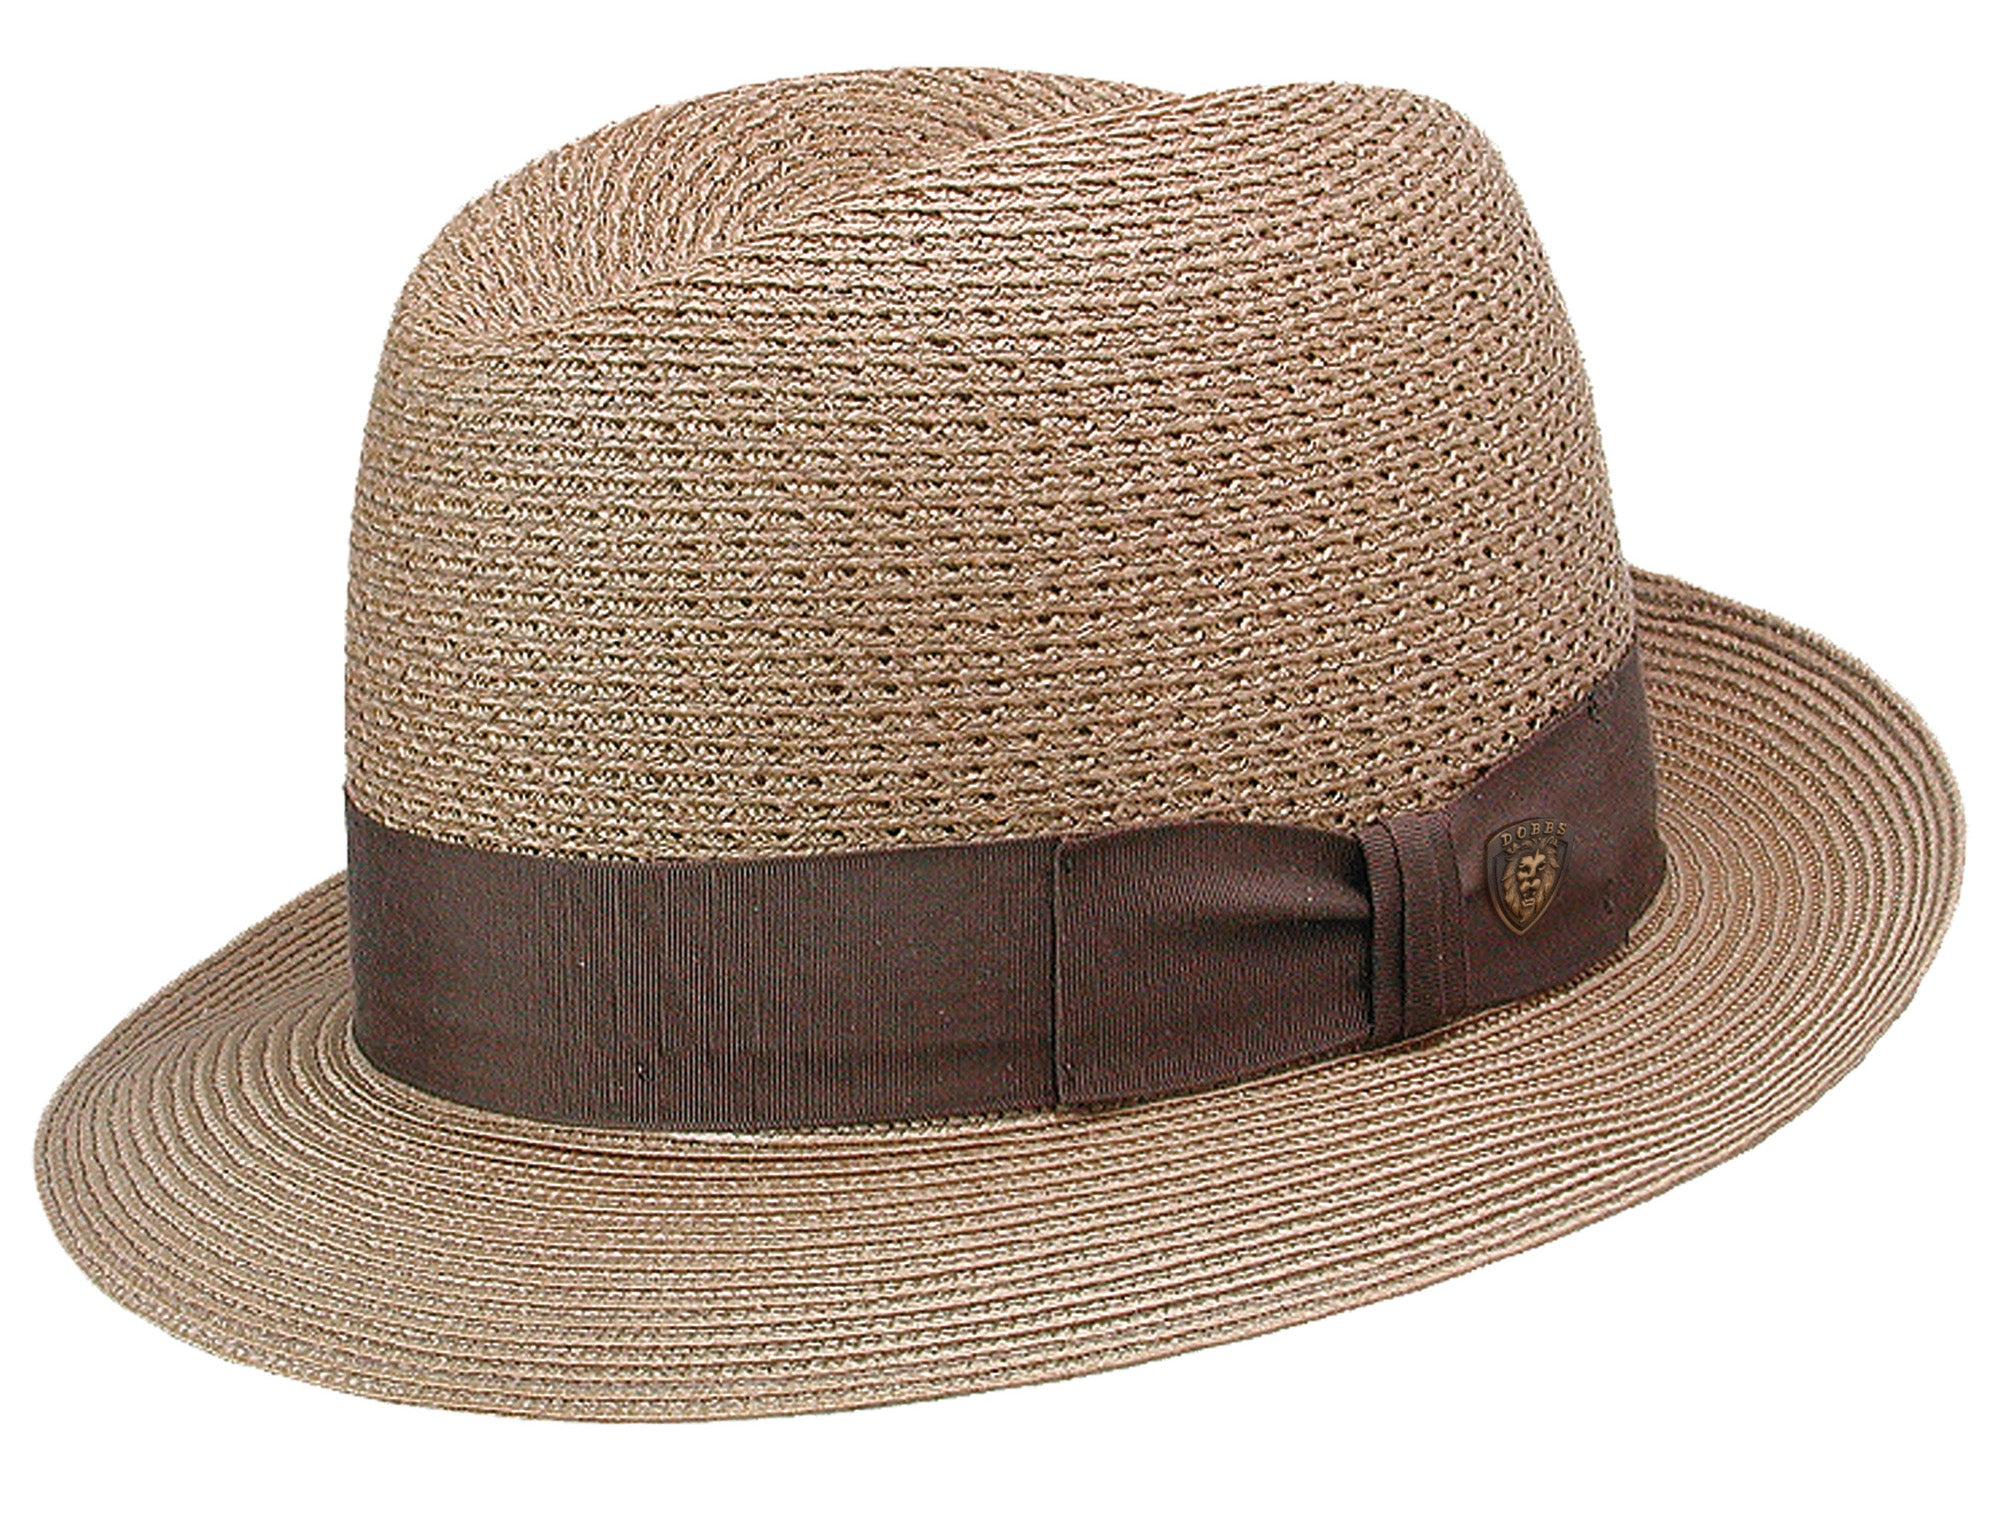 Dobbs Madison Straw Hat